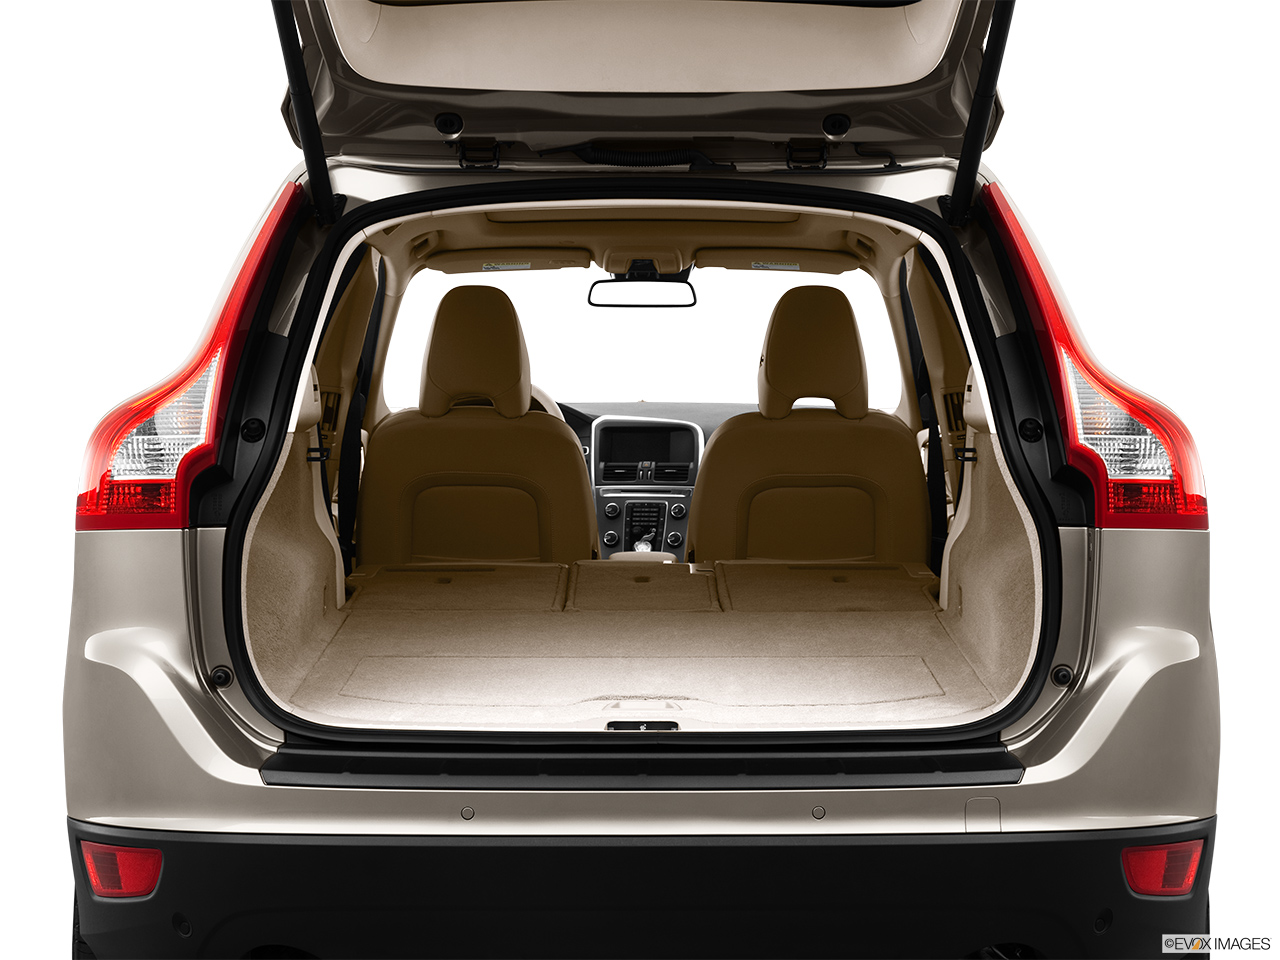 2013 Volvo XC60 3.2 FWD Premier Plus Hatchback & SUV rear angle.